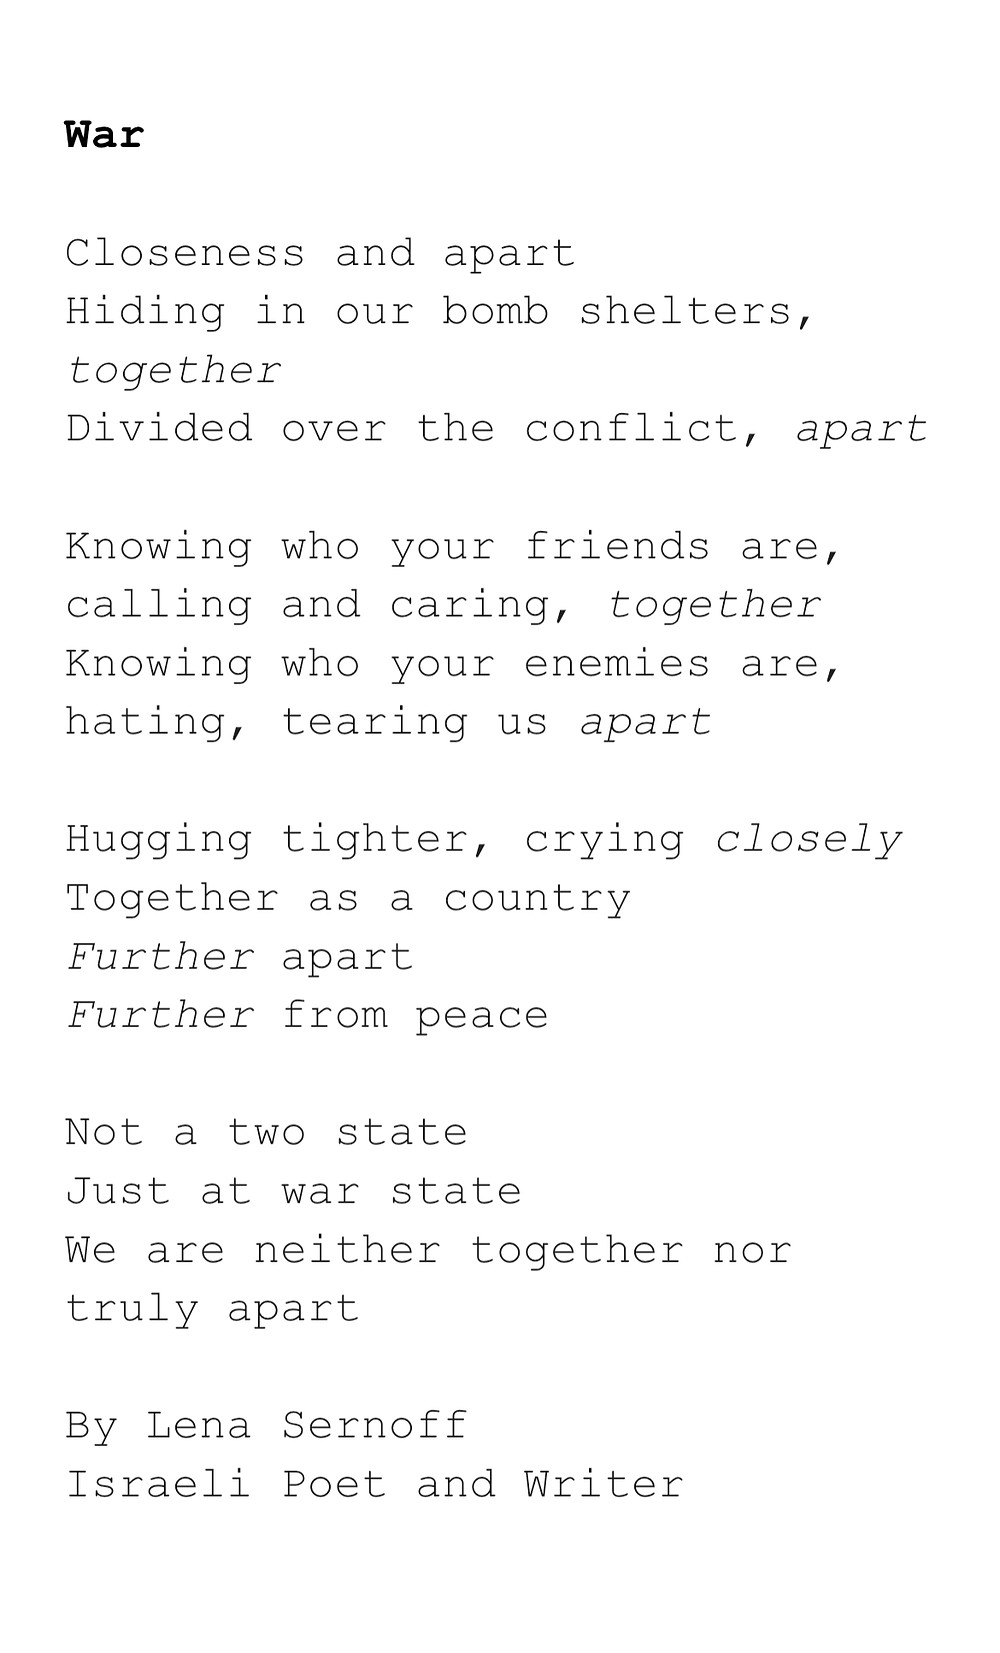 Israel Palestine Poem about war, peace and togetherness.